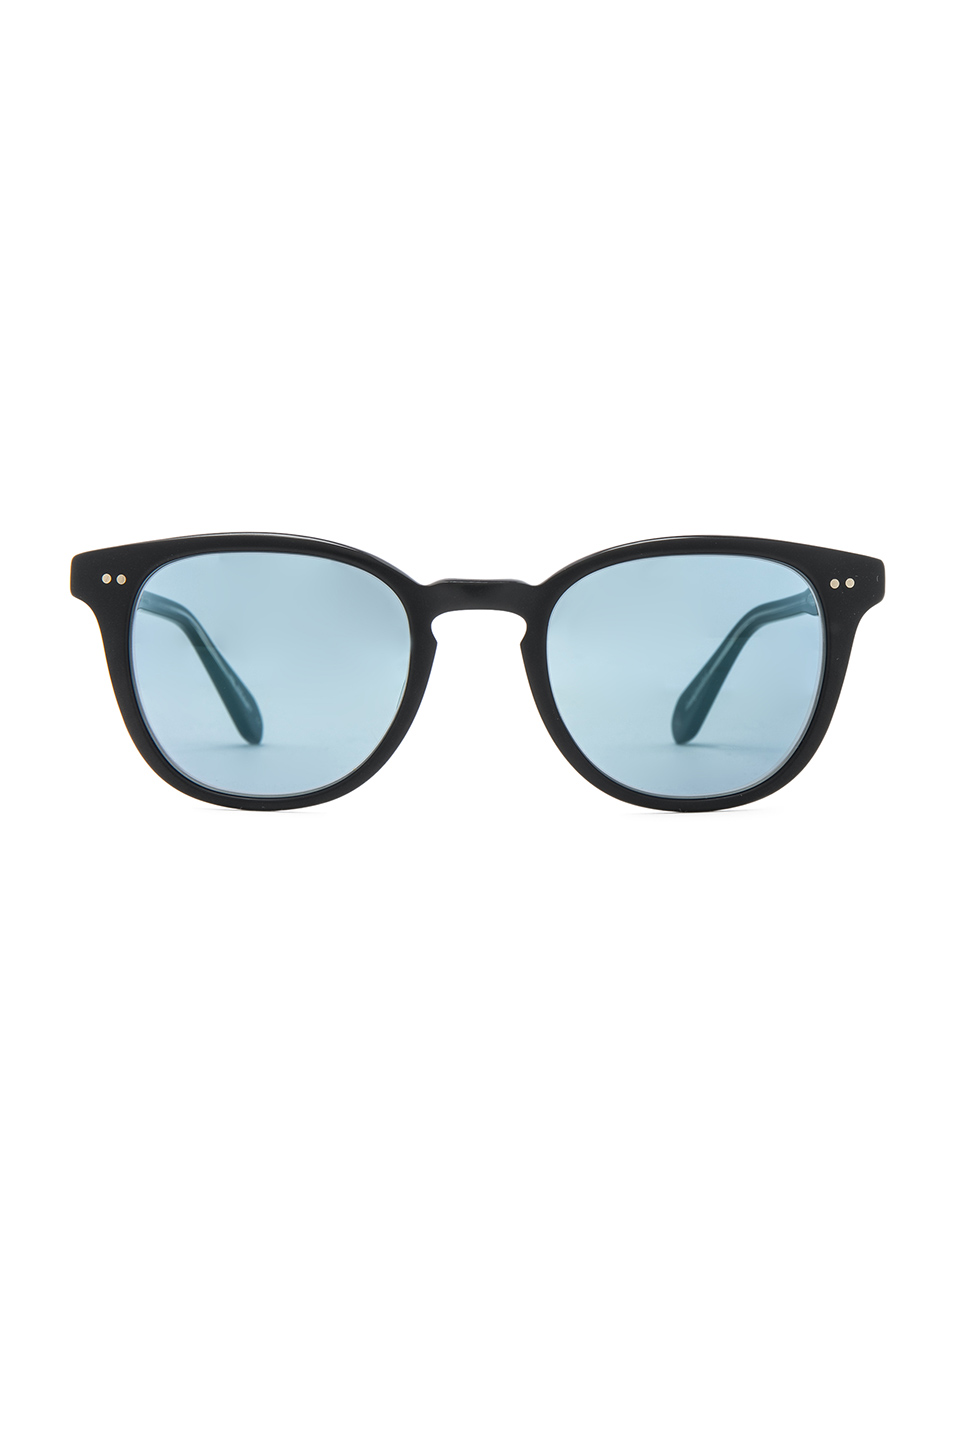 Garrett Leight McKinley 45 in Black